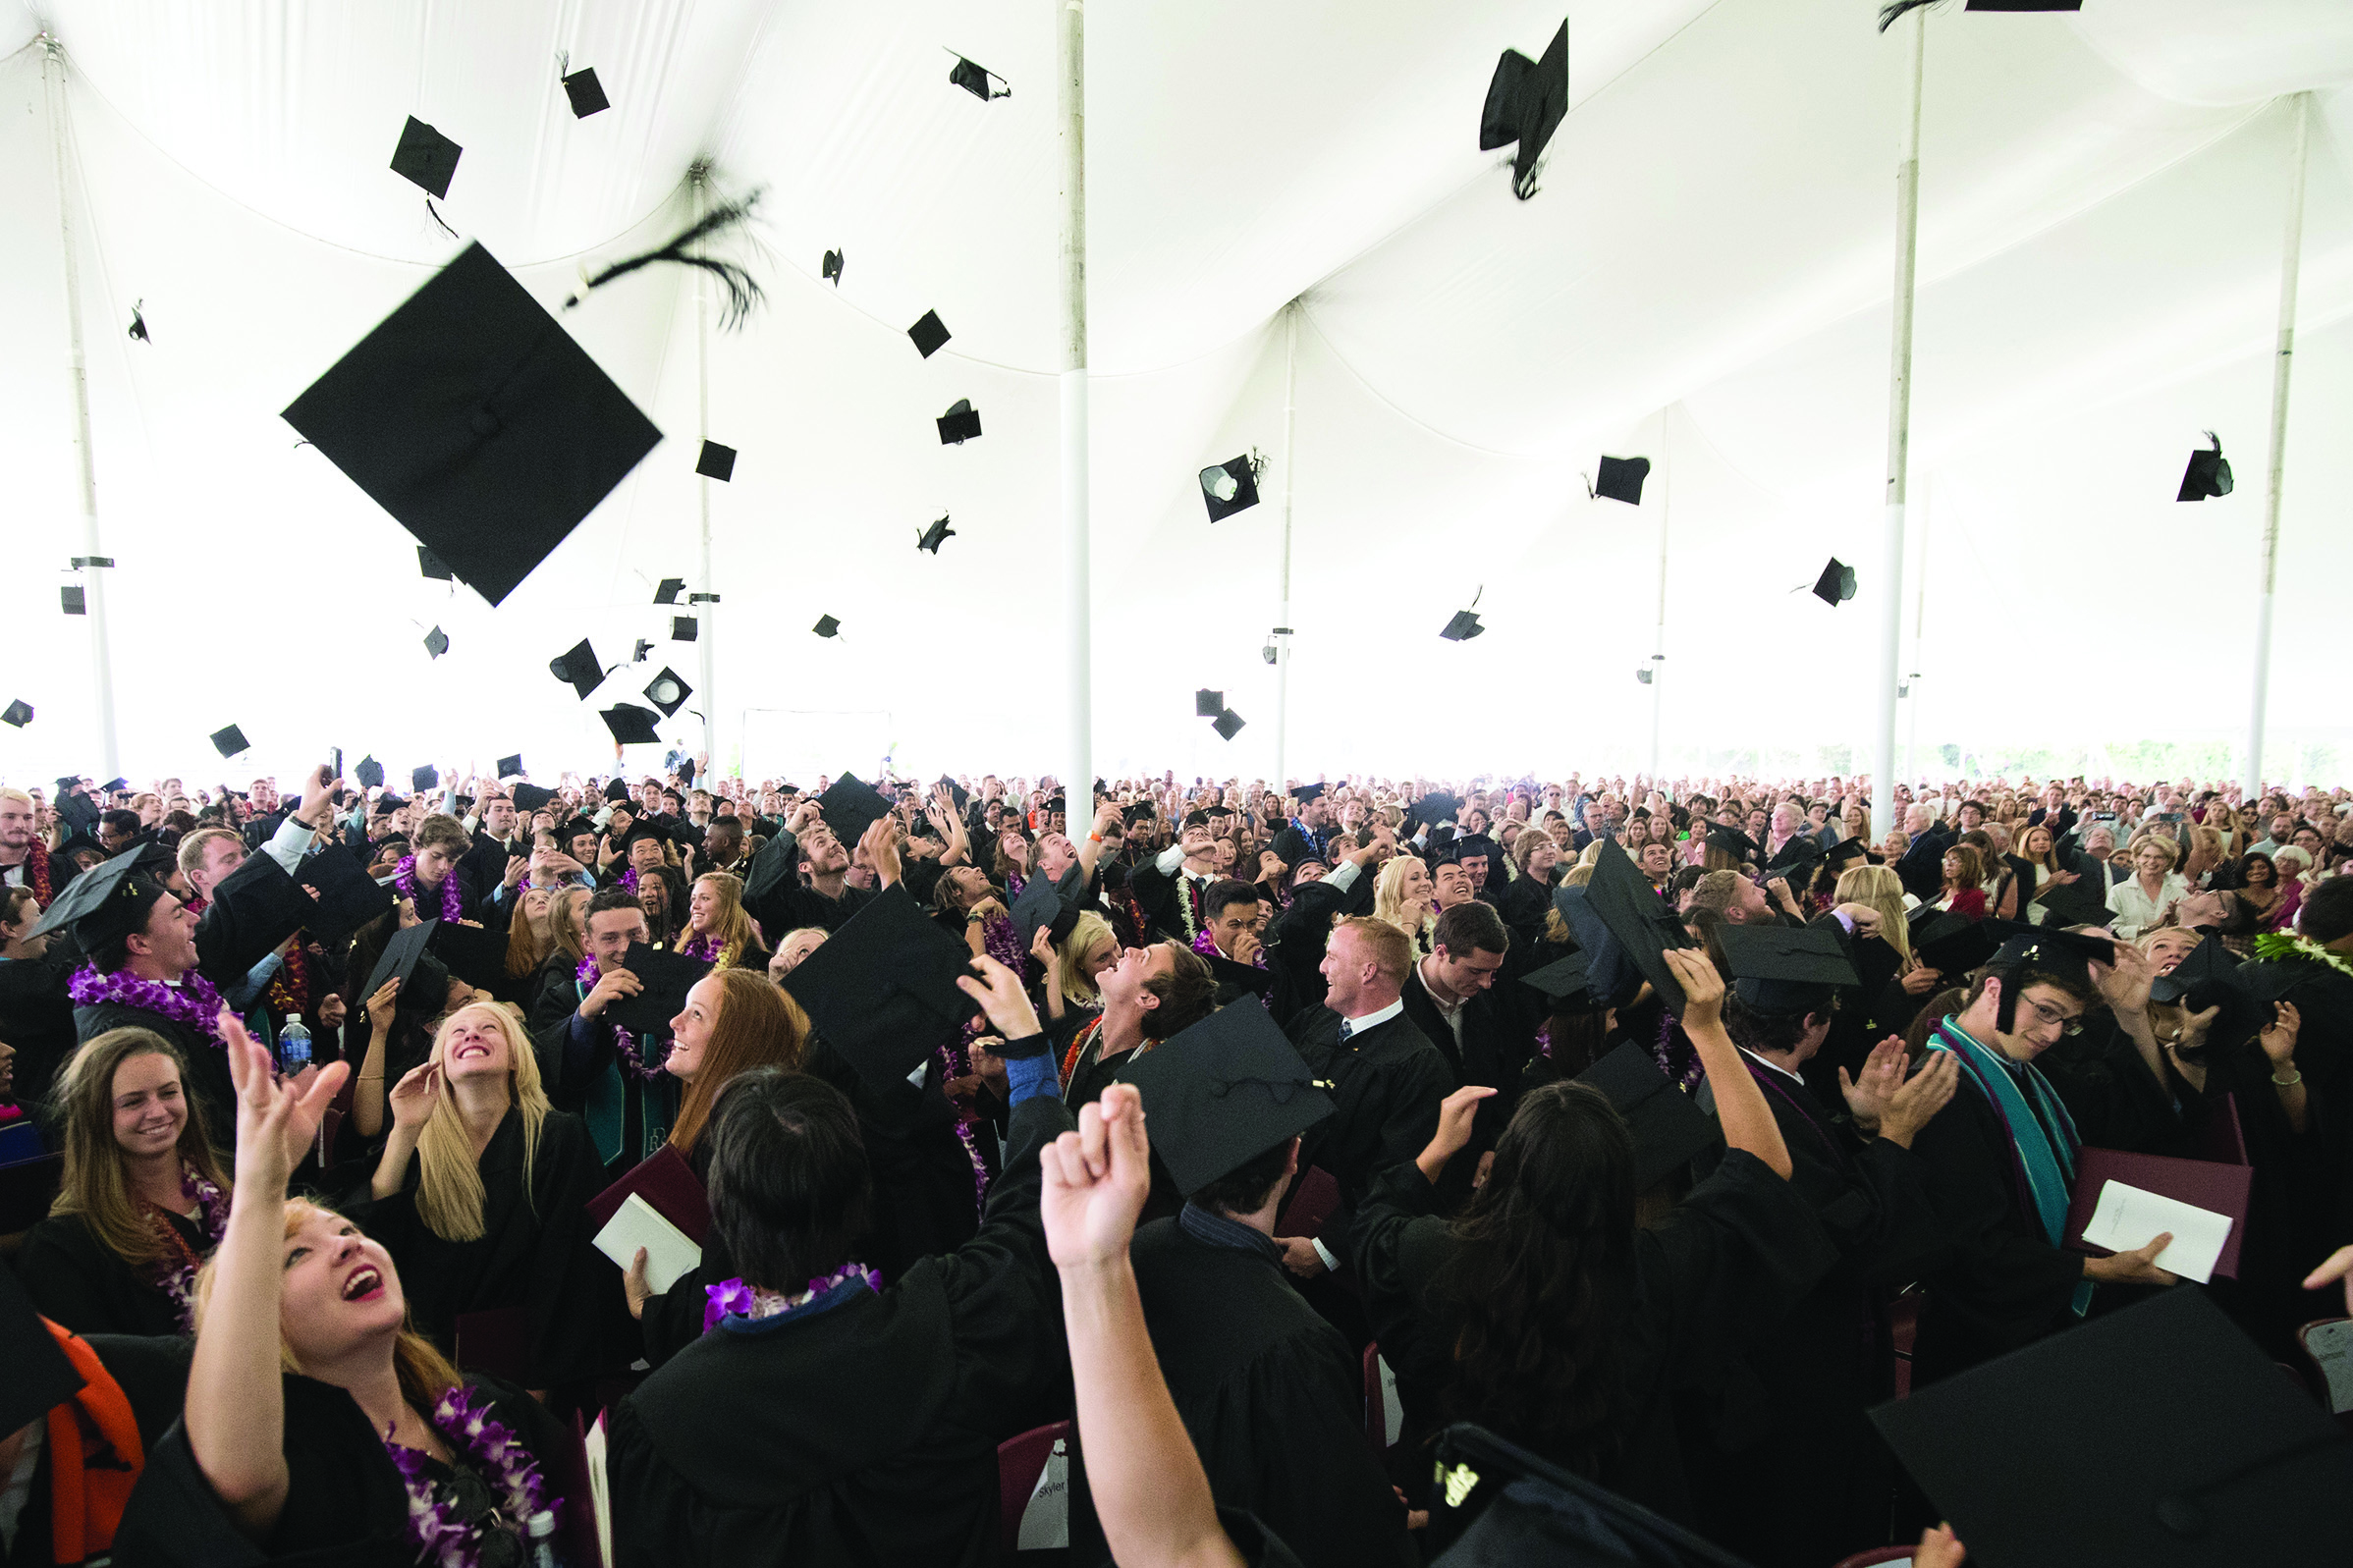 69th Commencement